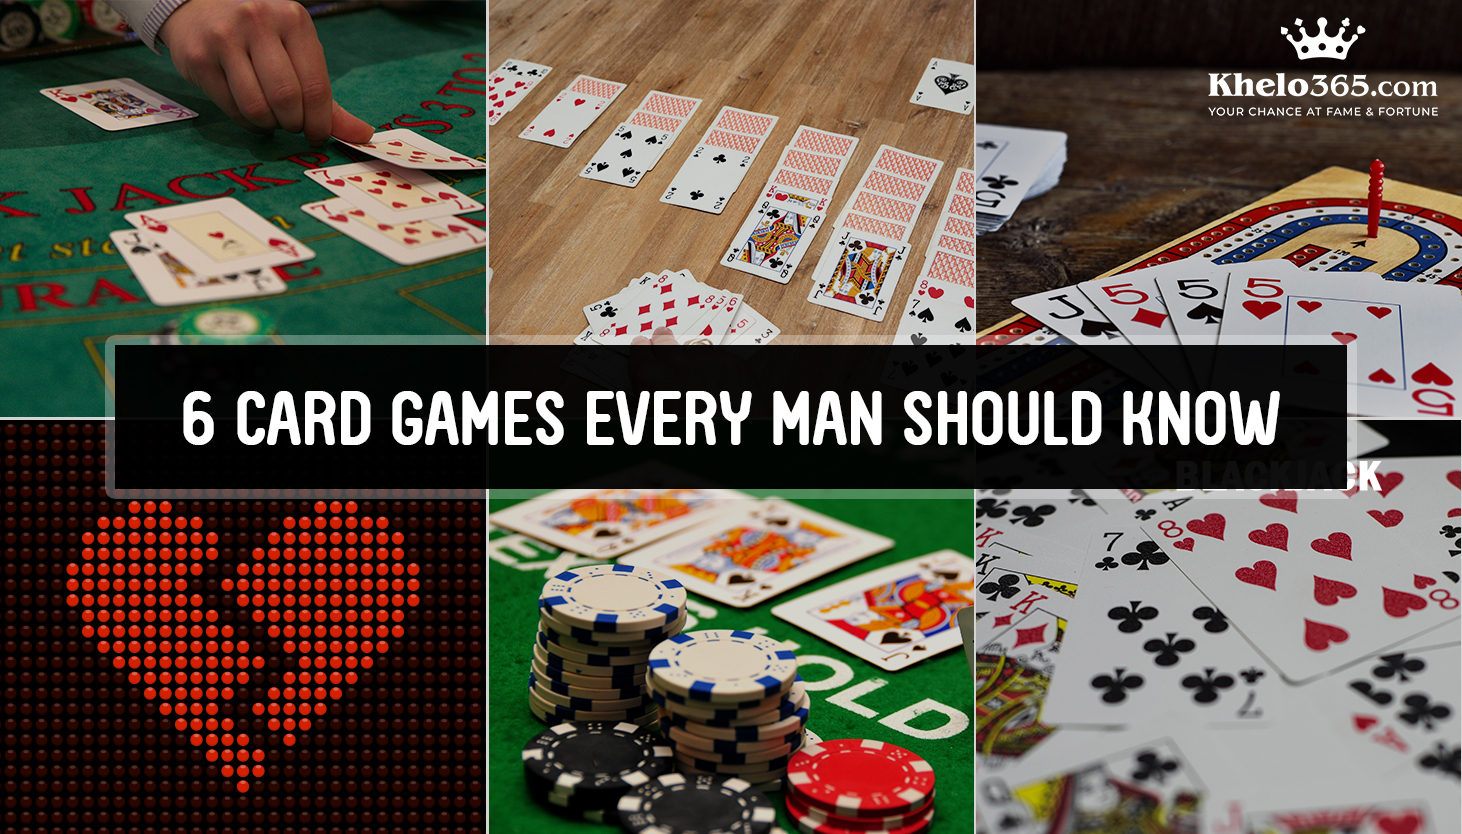 6 Card Games Every Man Should Know